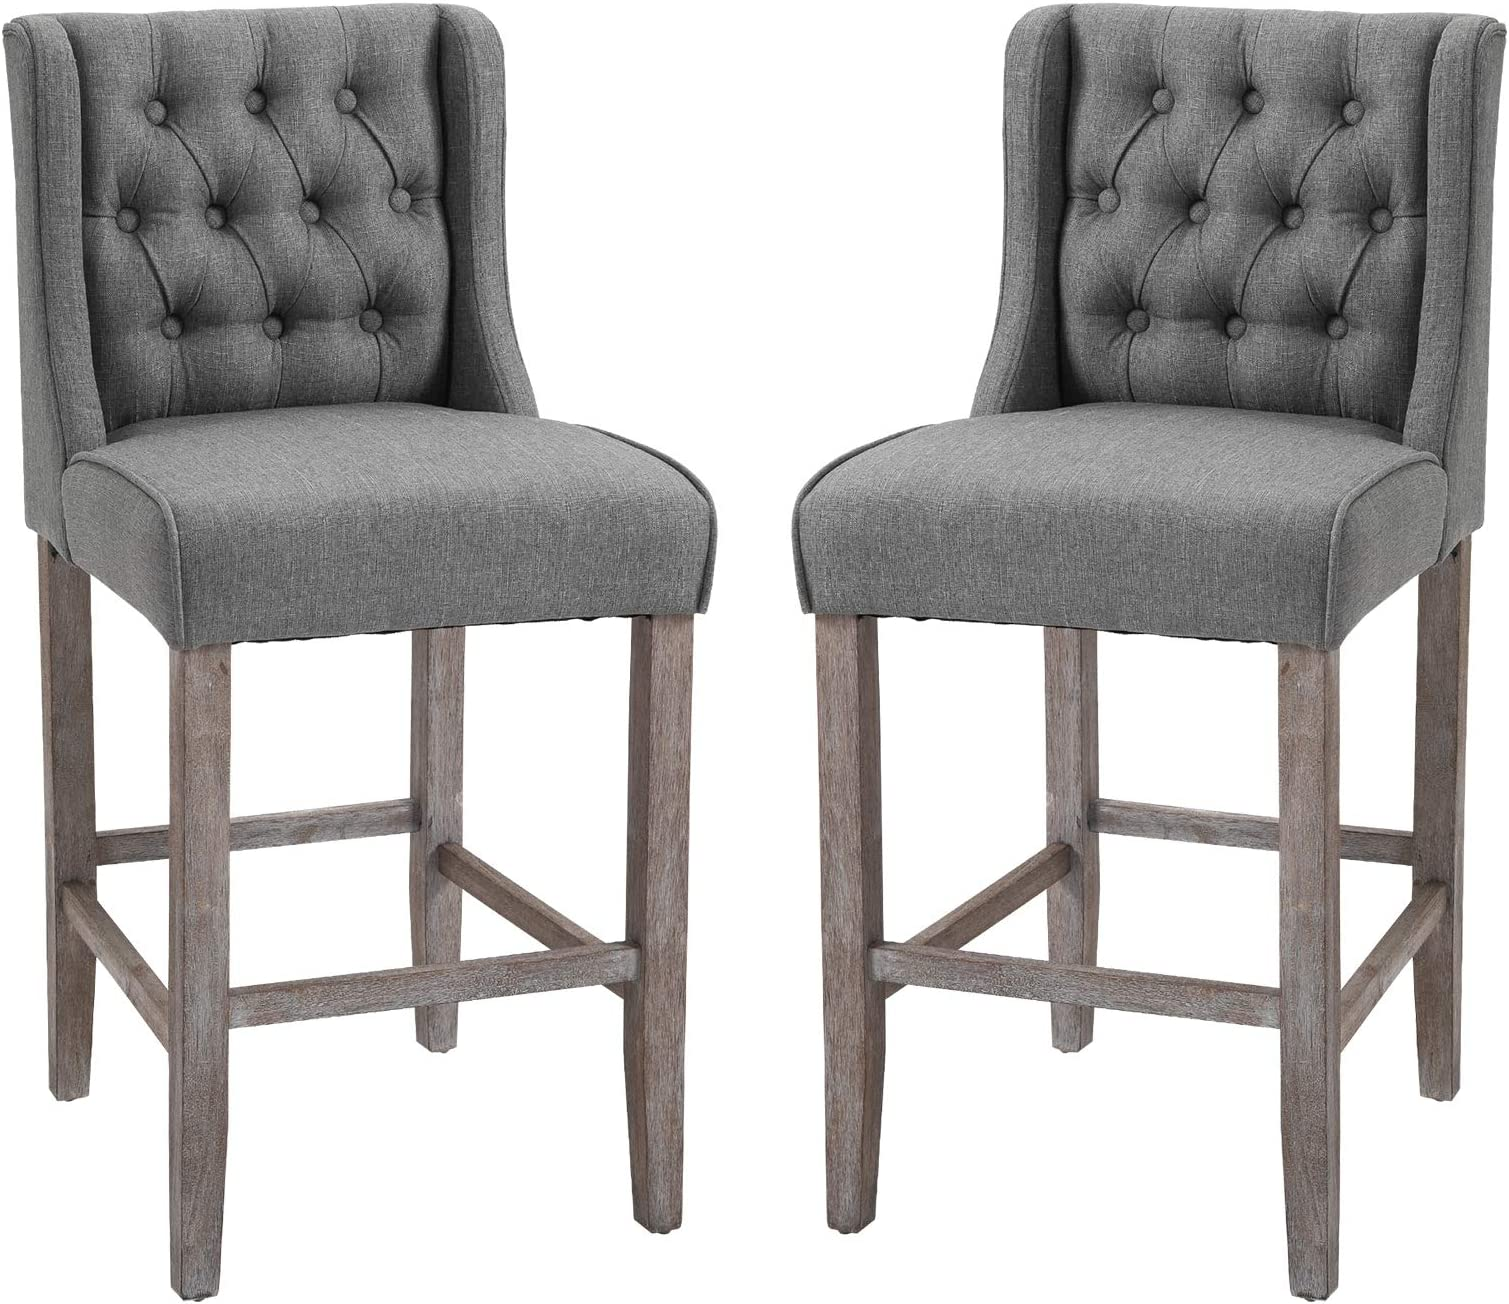 """HOMCOM 40"""" Counter Height Barstools Tufted Wingback Armless Dining Kitchen Upholstered Chair with Rubber Wood Legs, Set of 2, Grey"""